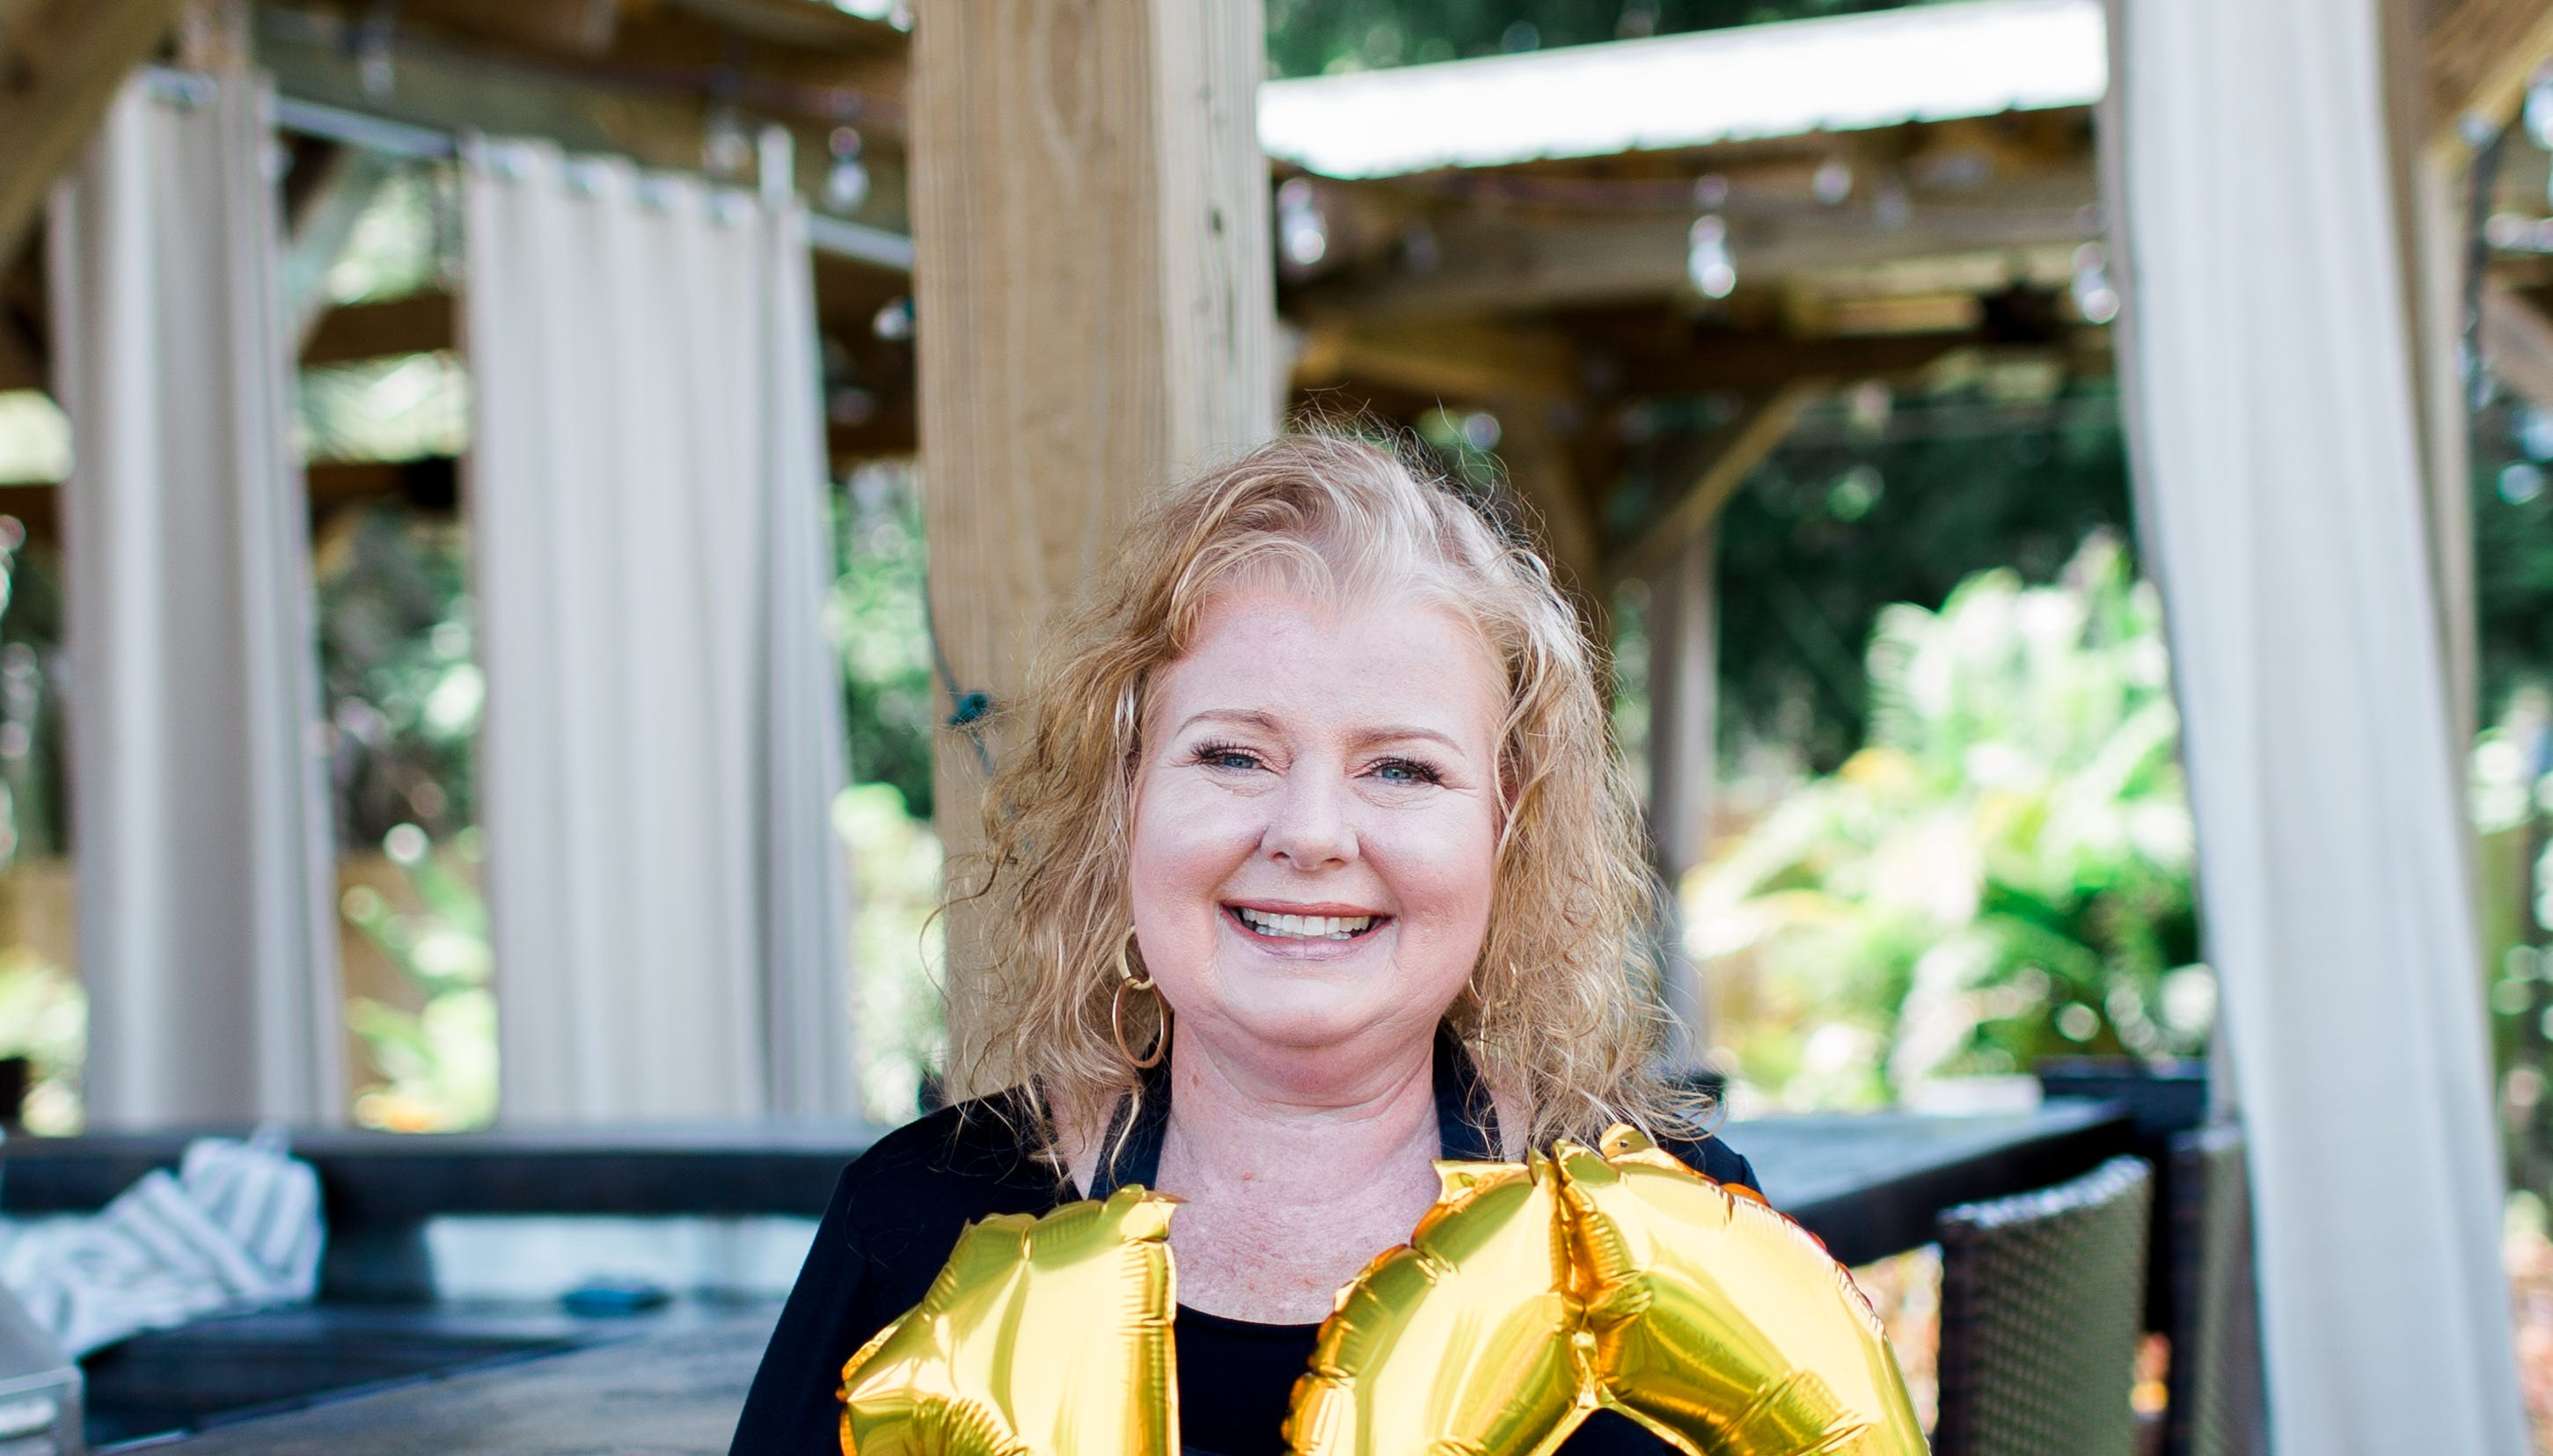 Beth Hazley, owner of Two Chicks and a Pot, is...